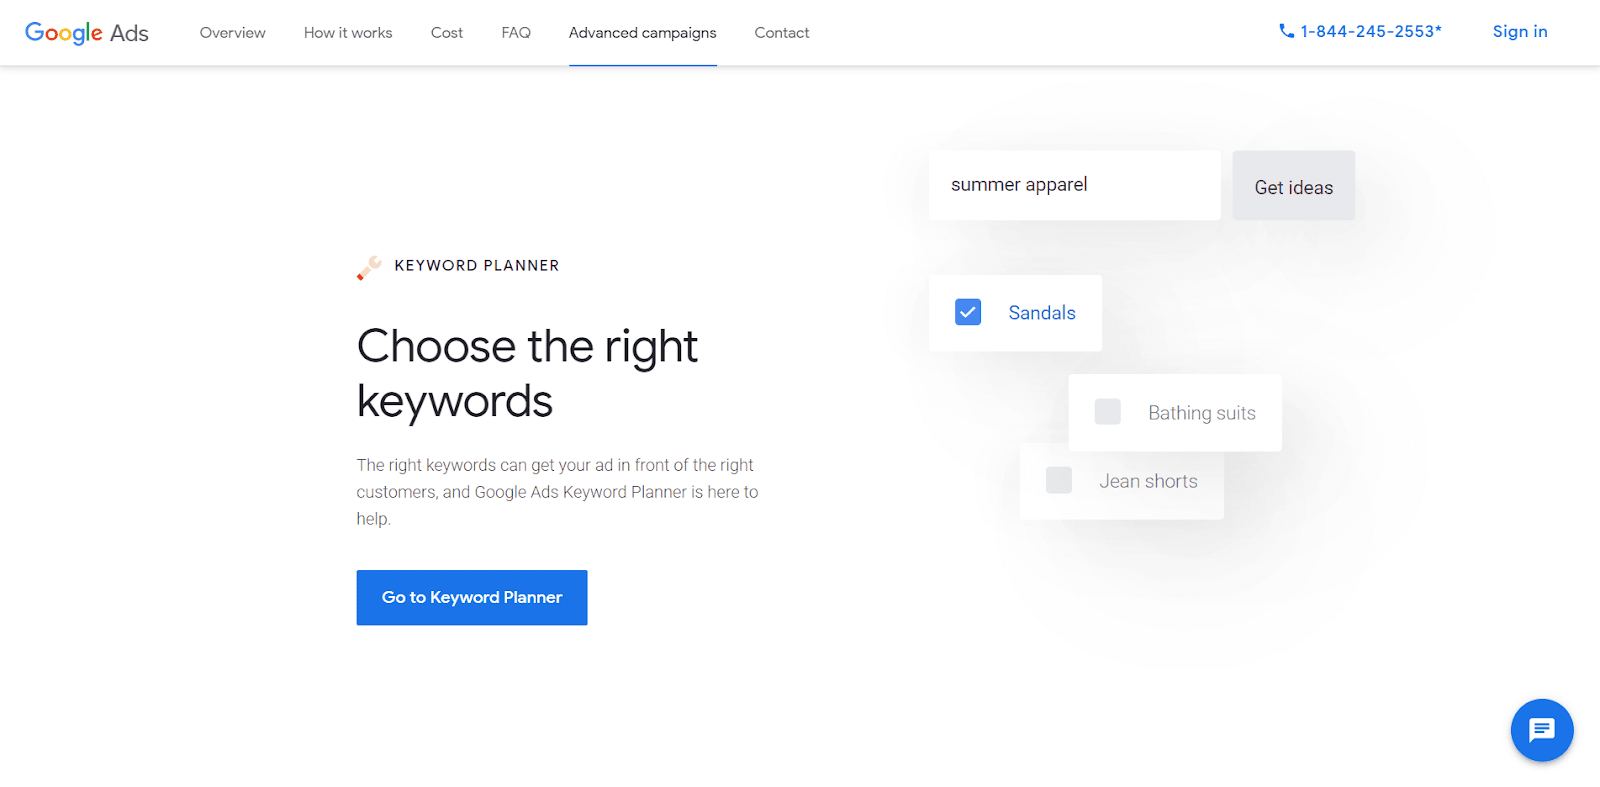 The homepage for the Google Keyword Planner.